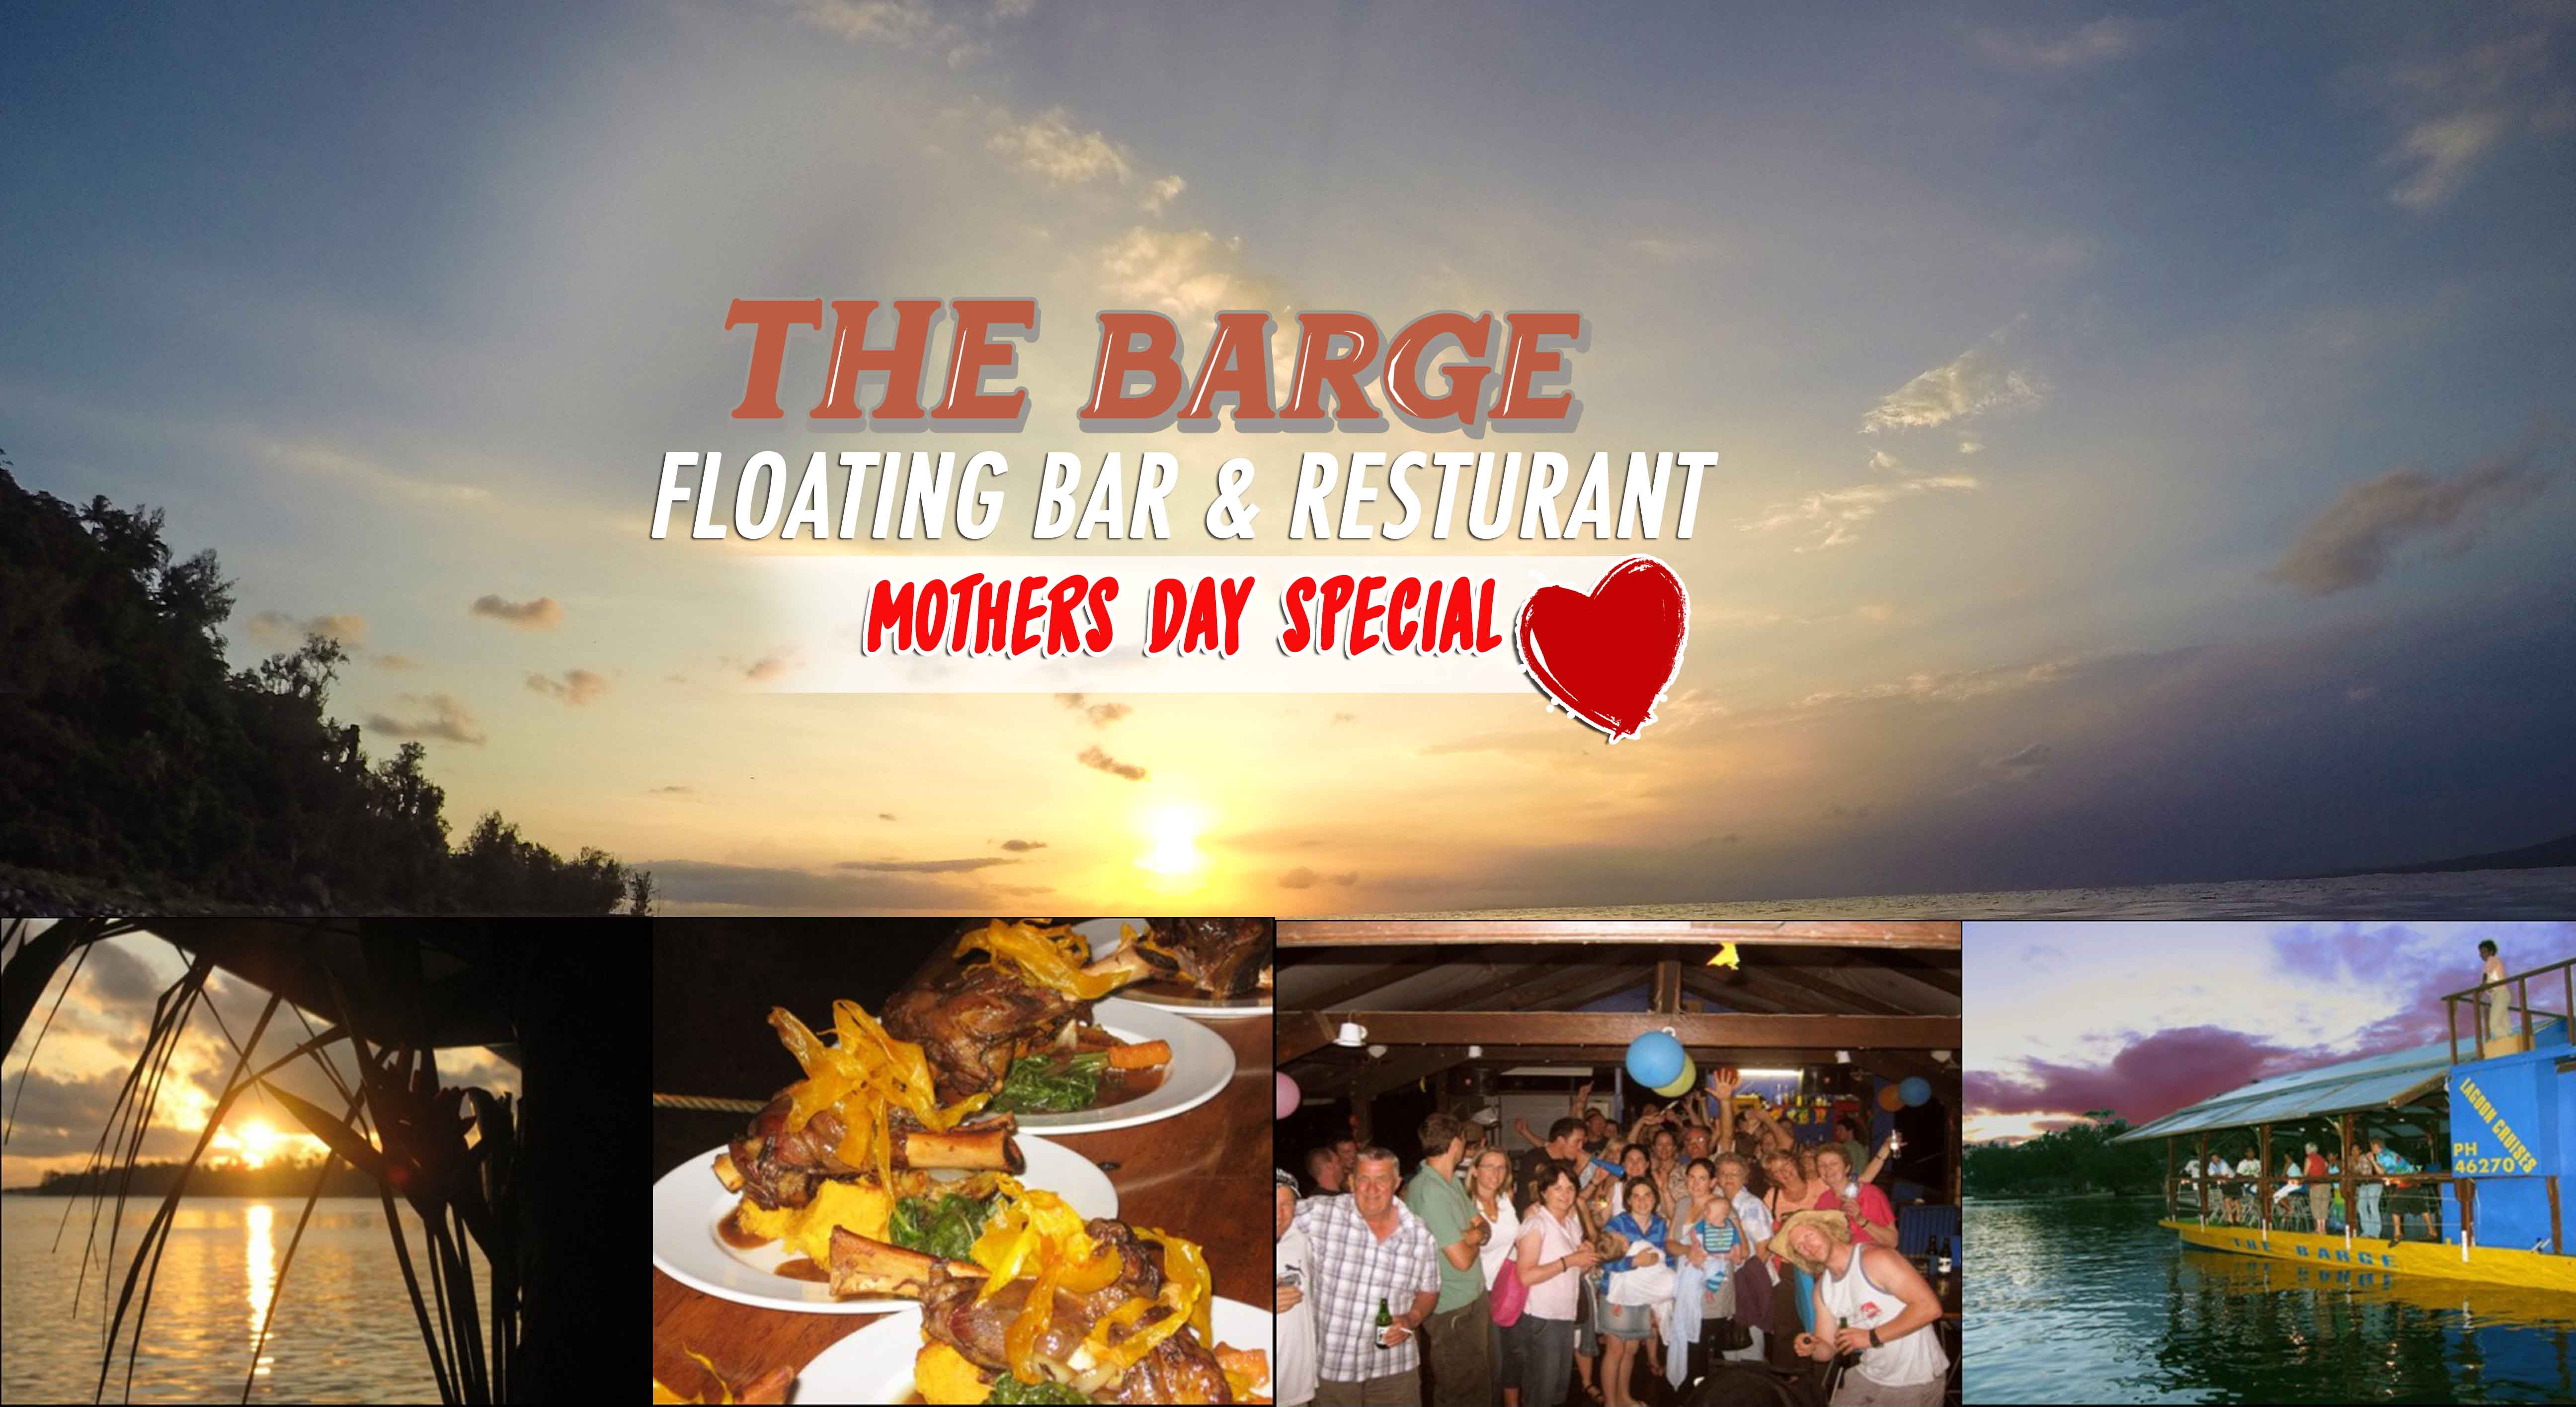 Mother's Day Special - The Barge